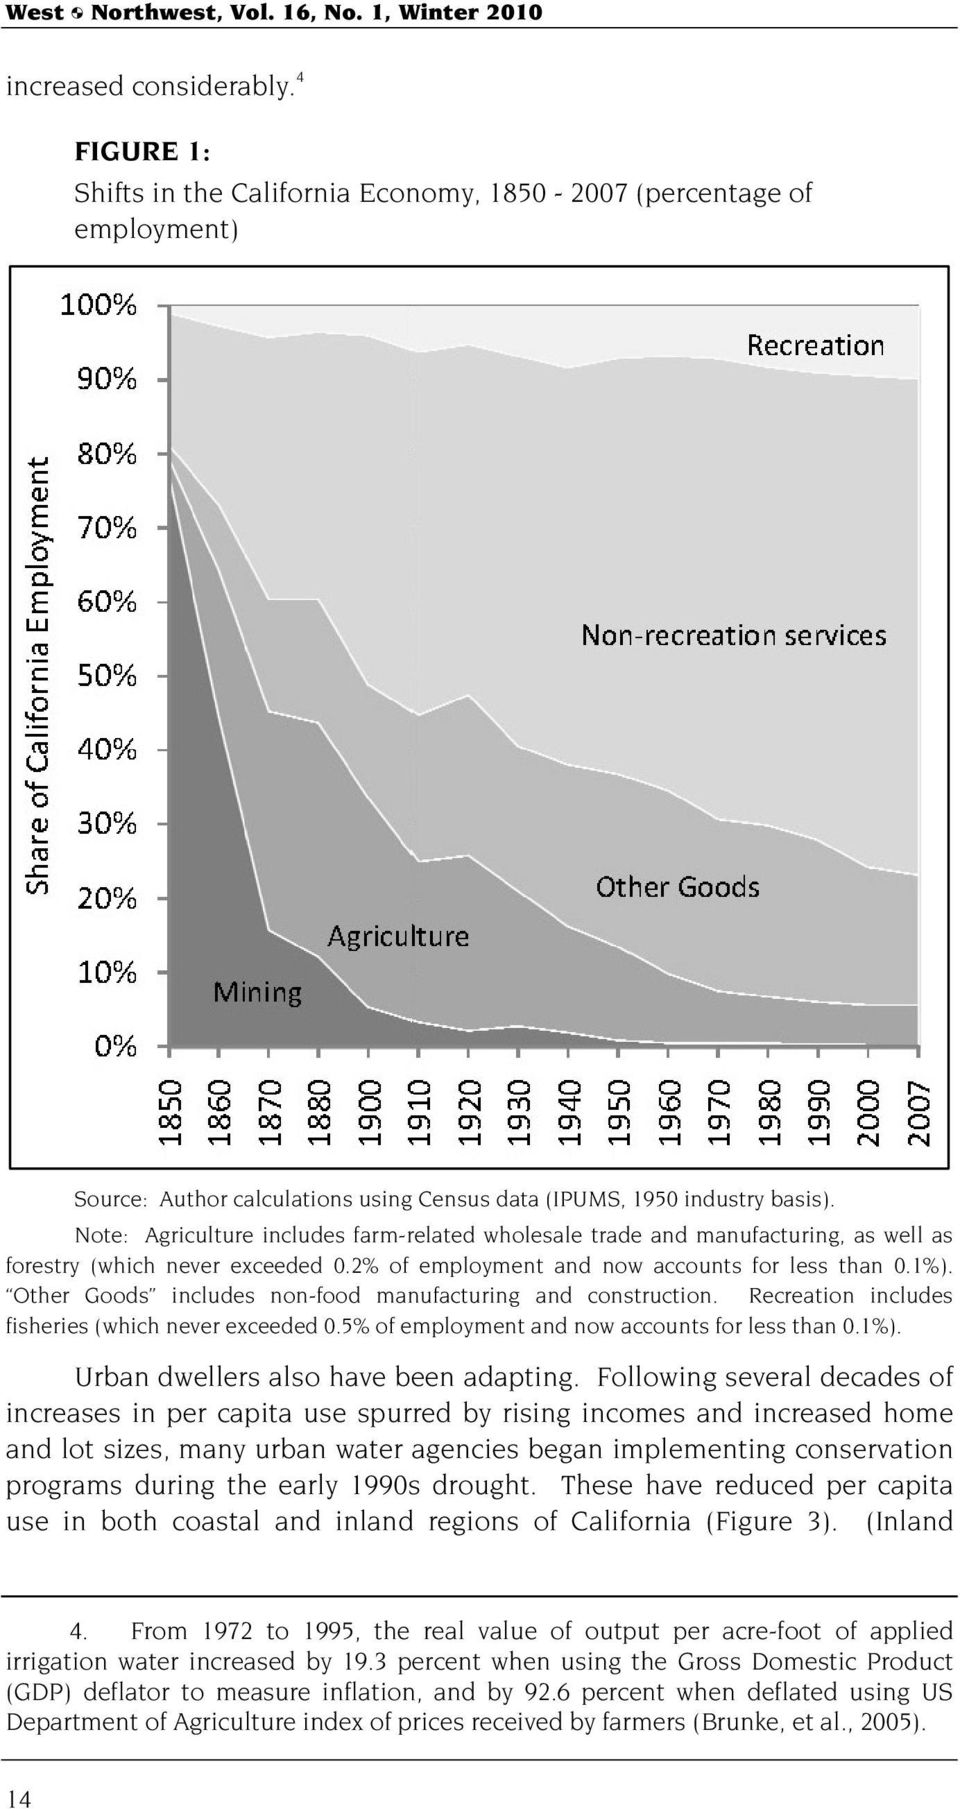 Other Goods includes non-food manufacturing and construction. Recreation includes fisheries (which never exceeded 0.5% of employment and now accounts for less than 0.1%).